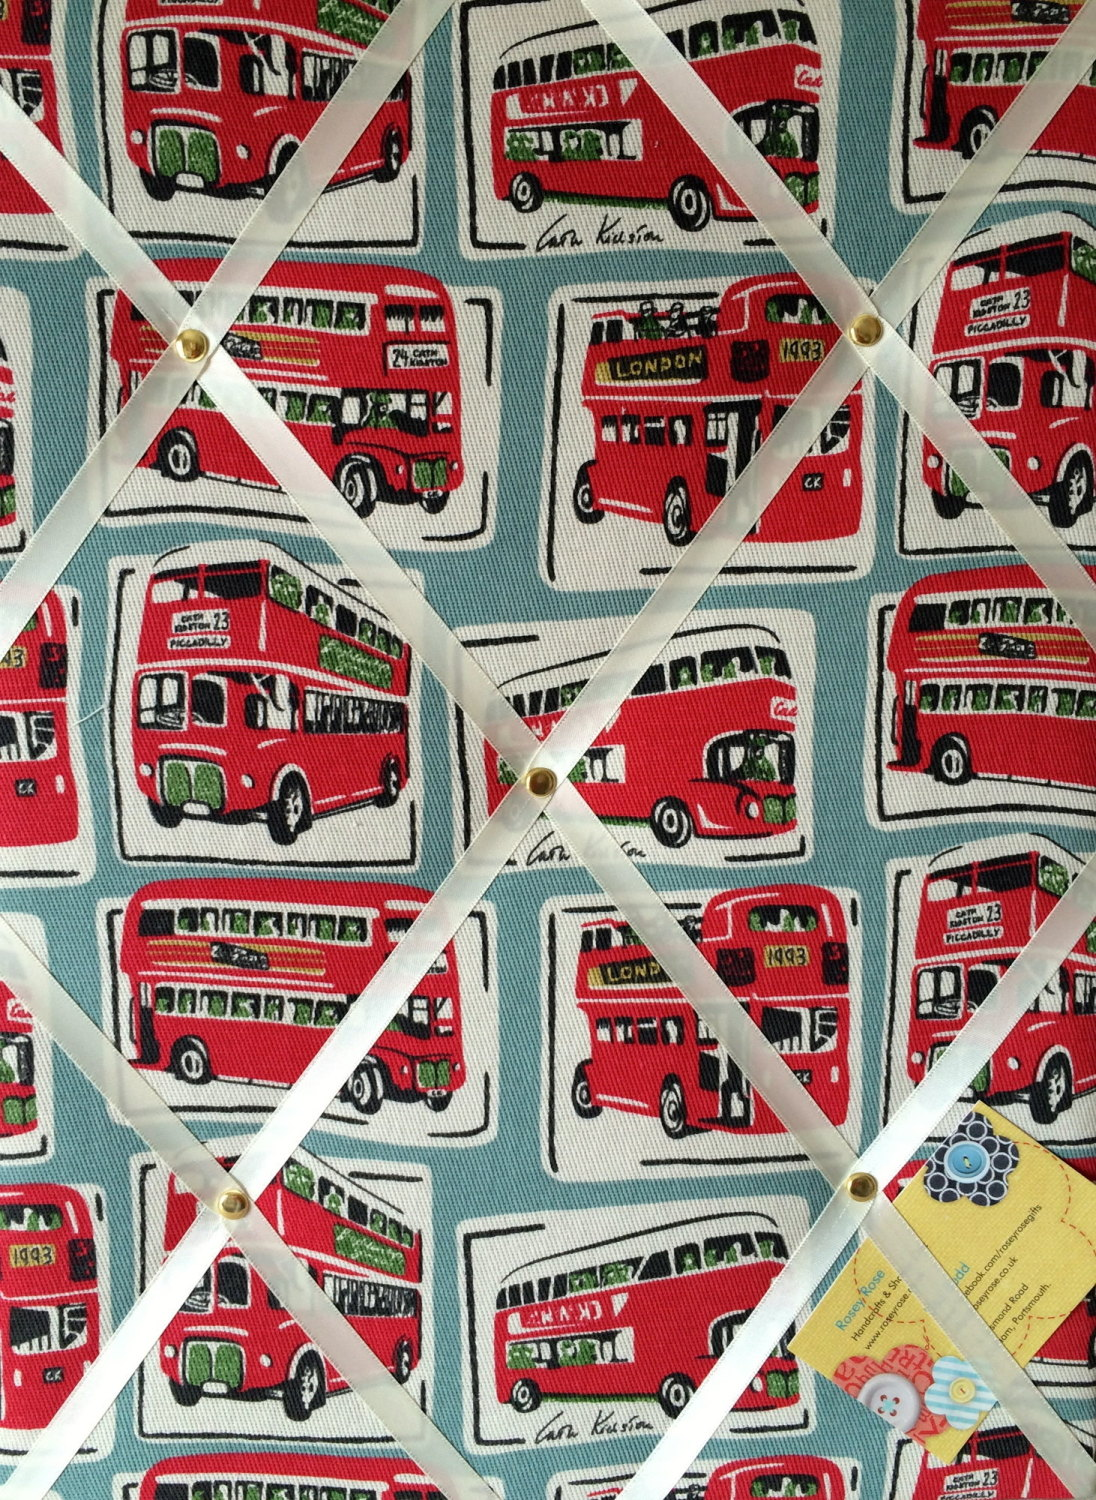 Medium 40x30cm Cath Kidston London Buses Hand Crafted Fabric Notice / Pin /